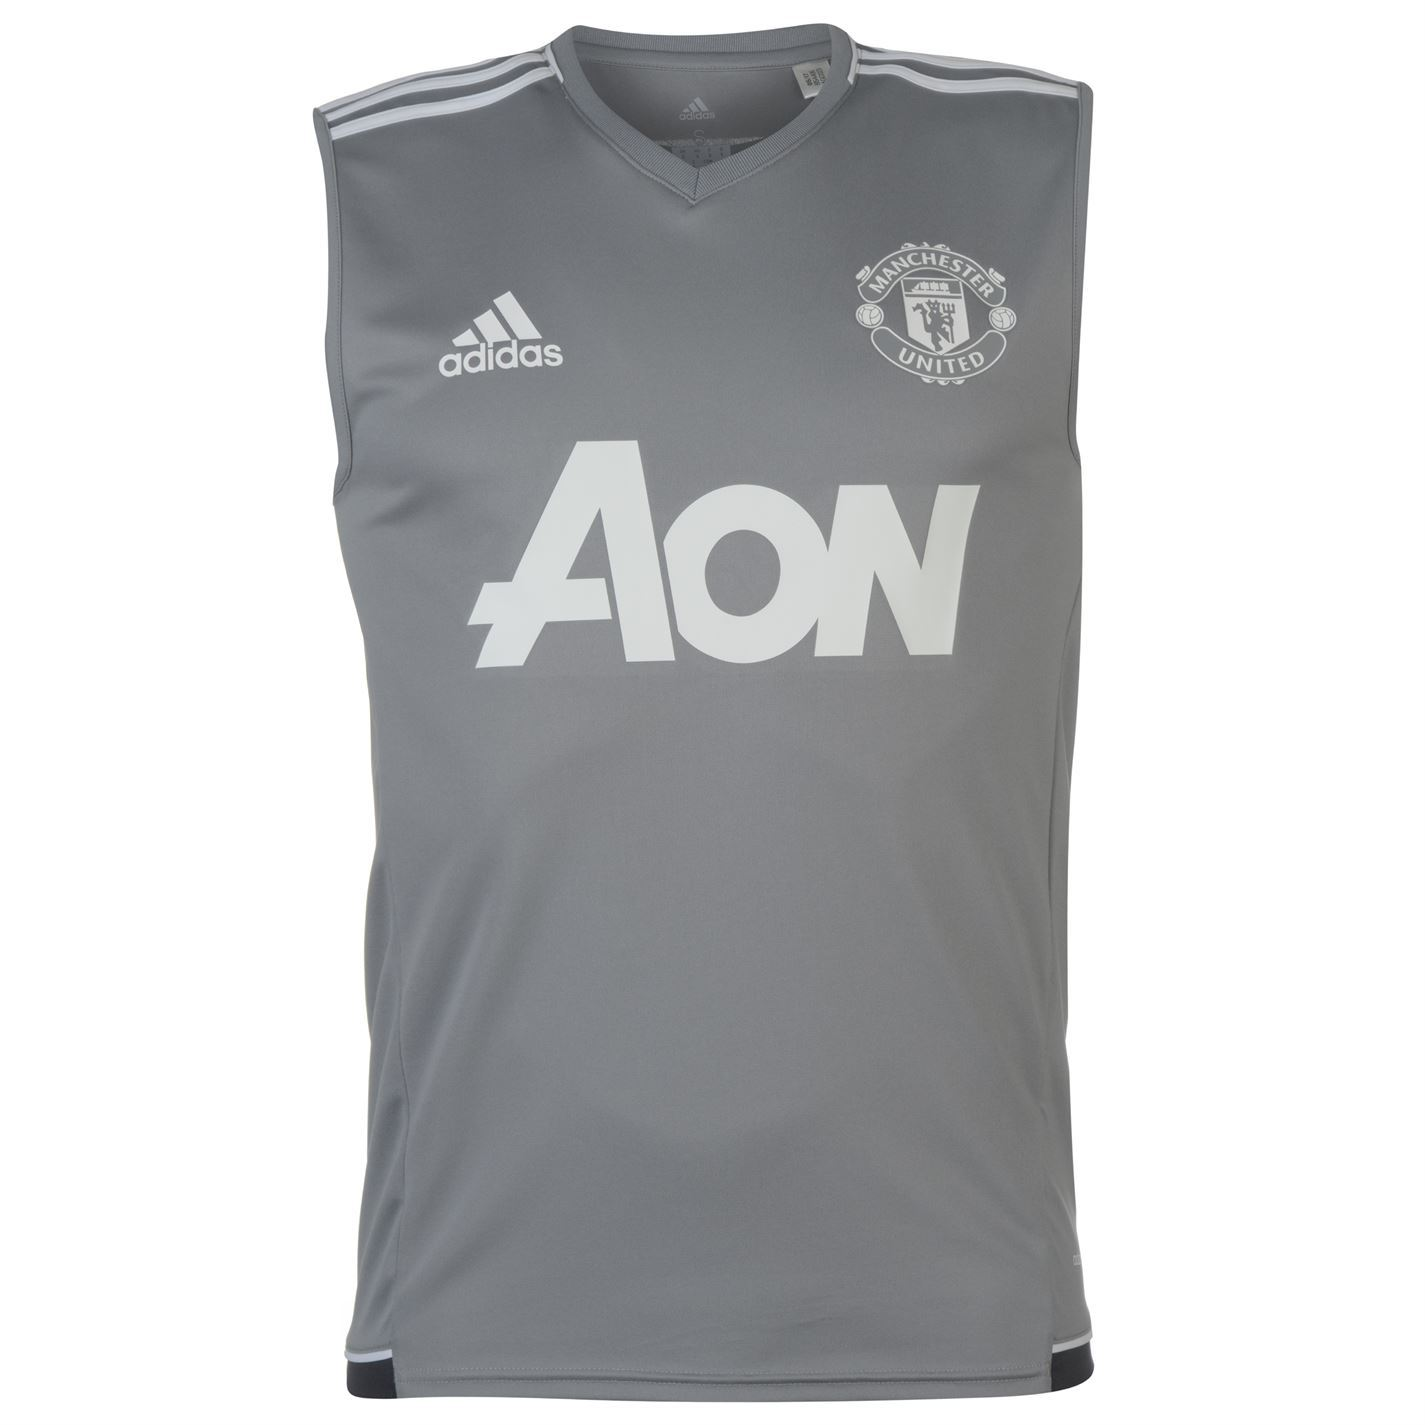 e0670b8a78e This Mens adidas Manchester United Training Top has been crafted with  ClimaCool technology which draws sweat away from your skin to keep you dry  whilst also ...